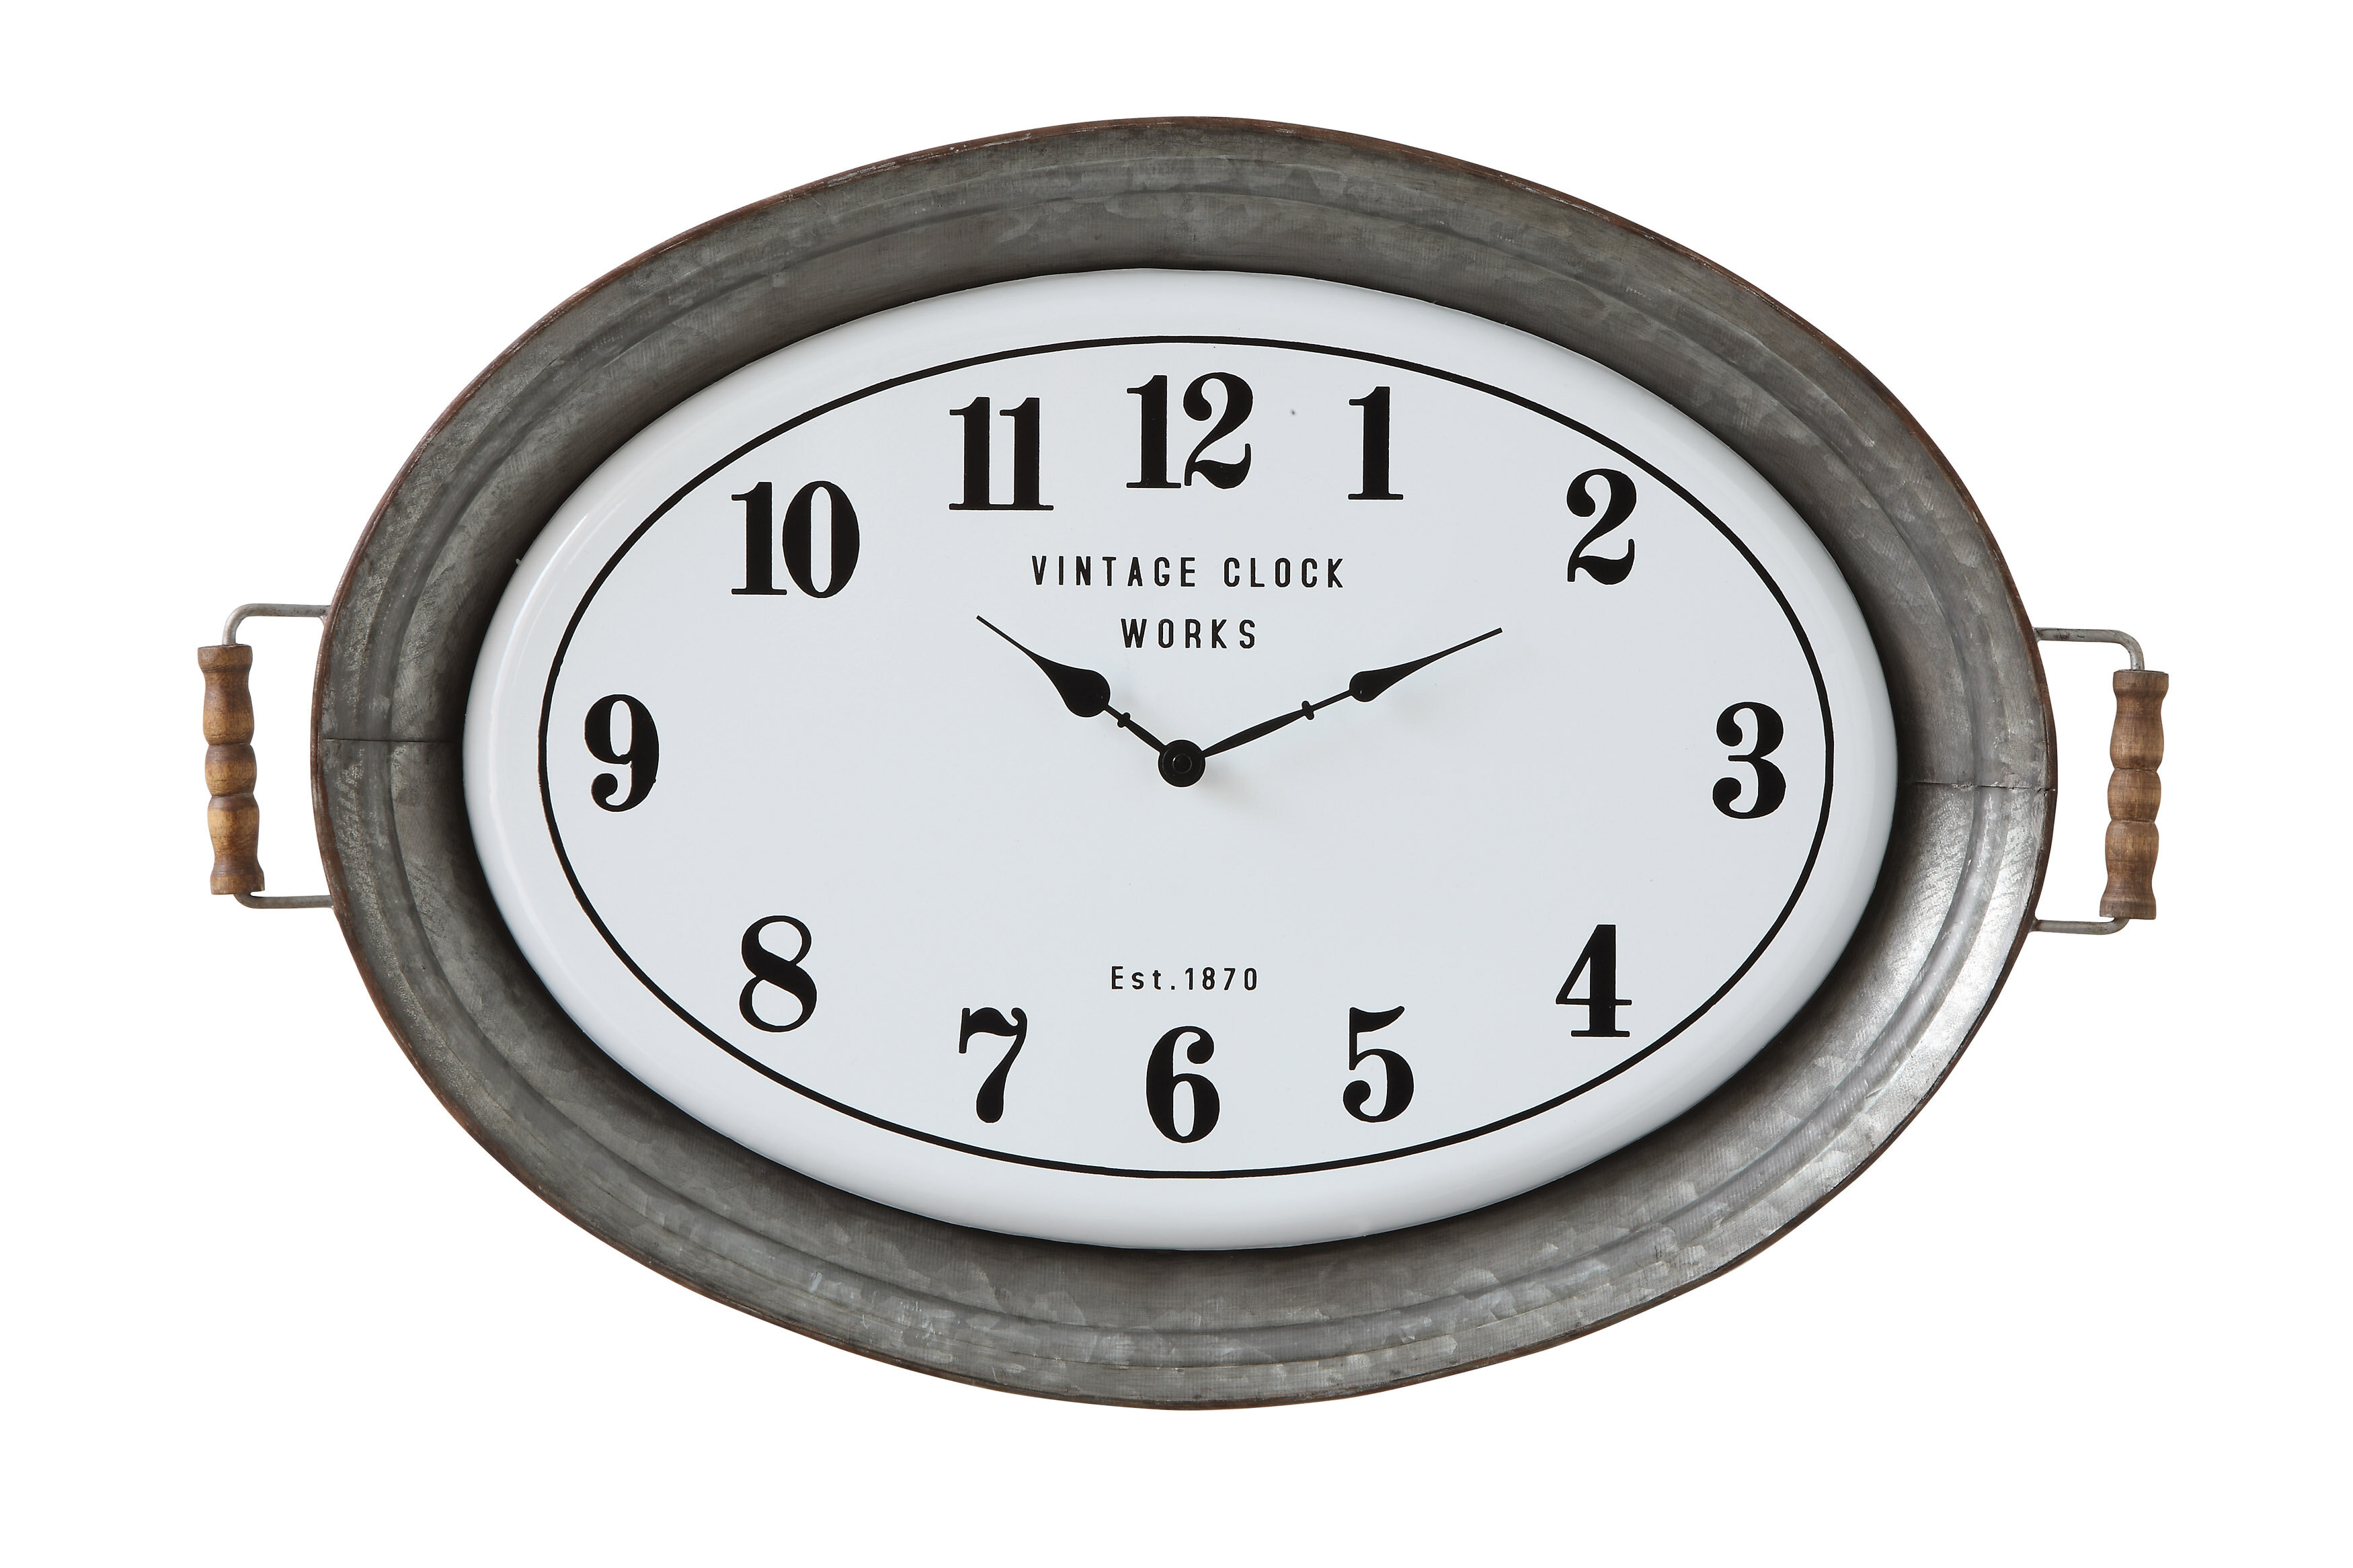 Gracie oaks stef oval metal wall clock with serving tray design wayfair